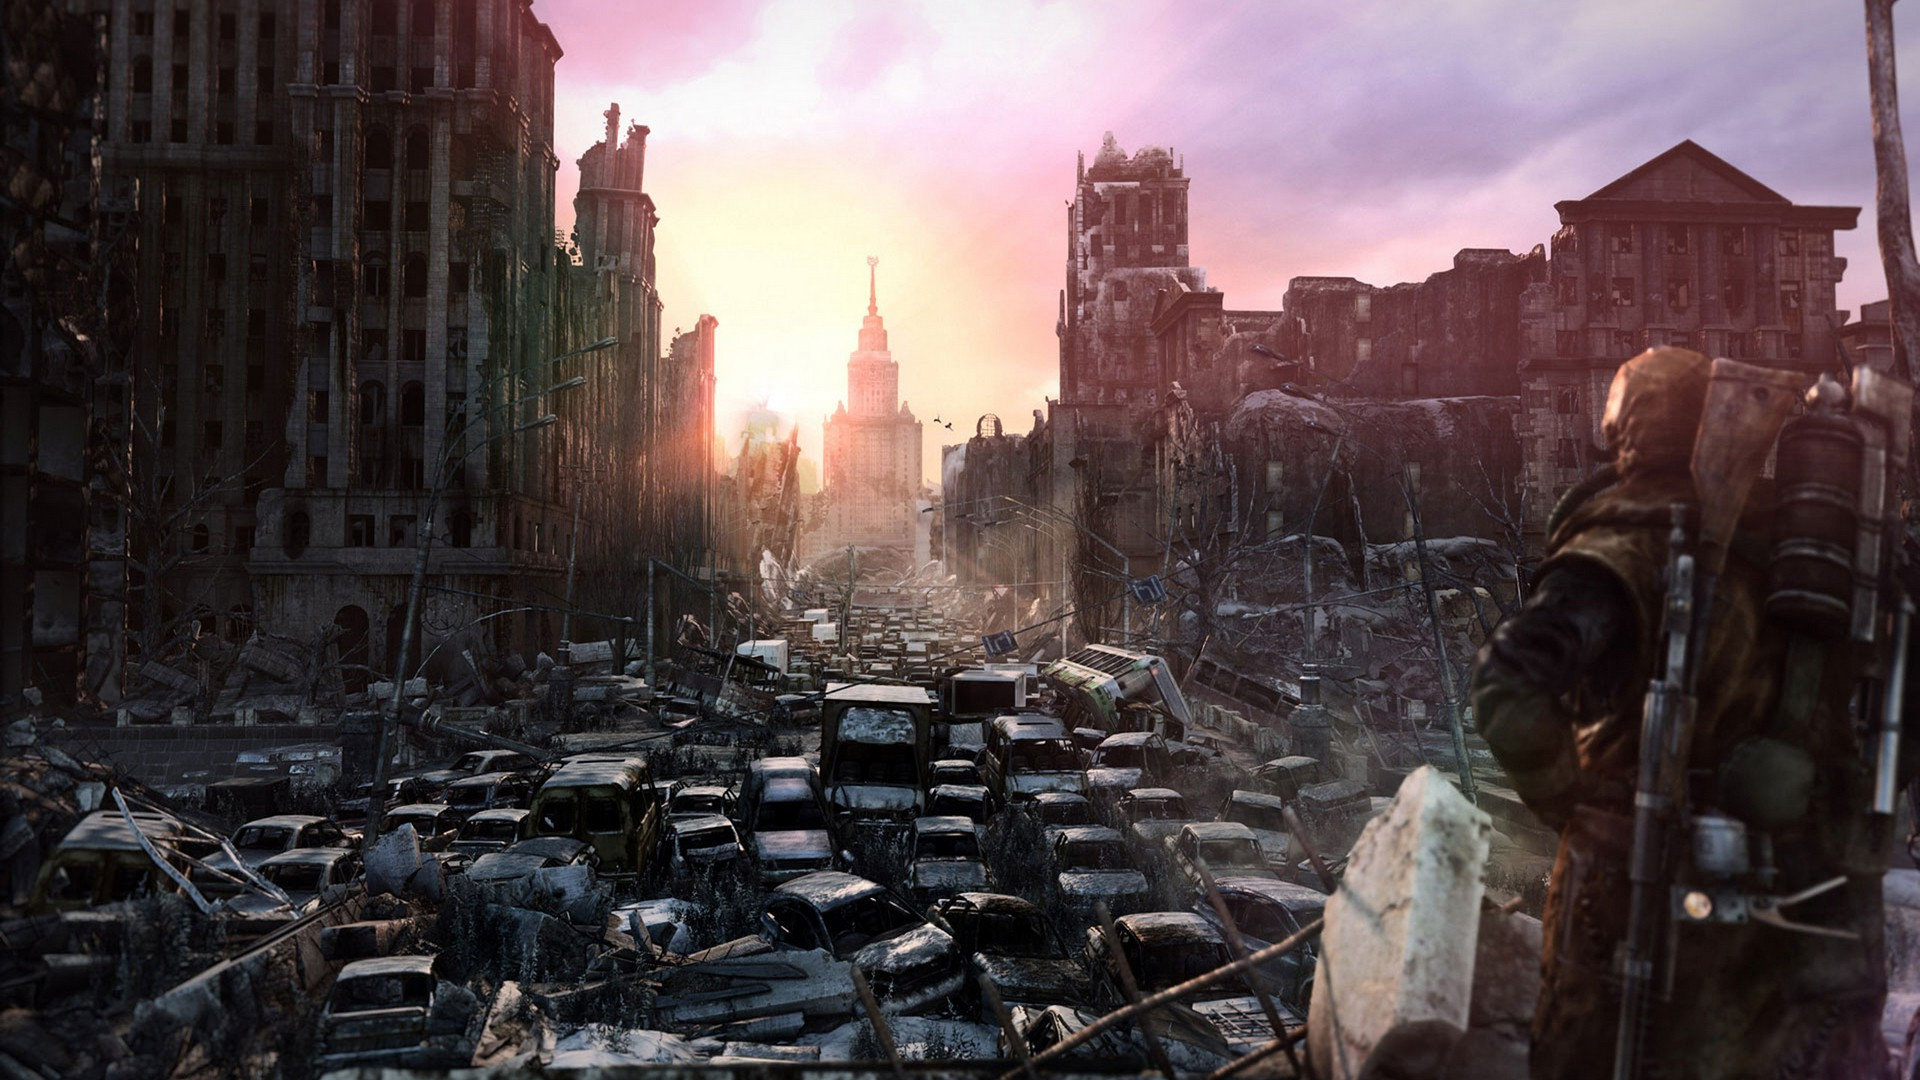 3d Futuristic Wallpapers Metro 2033 Apocalyptic Video Games Wallpapers Hd